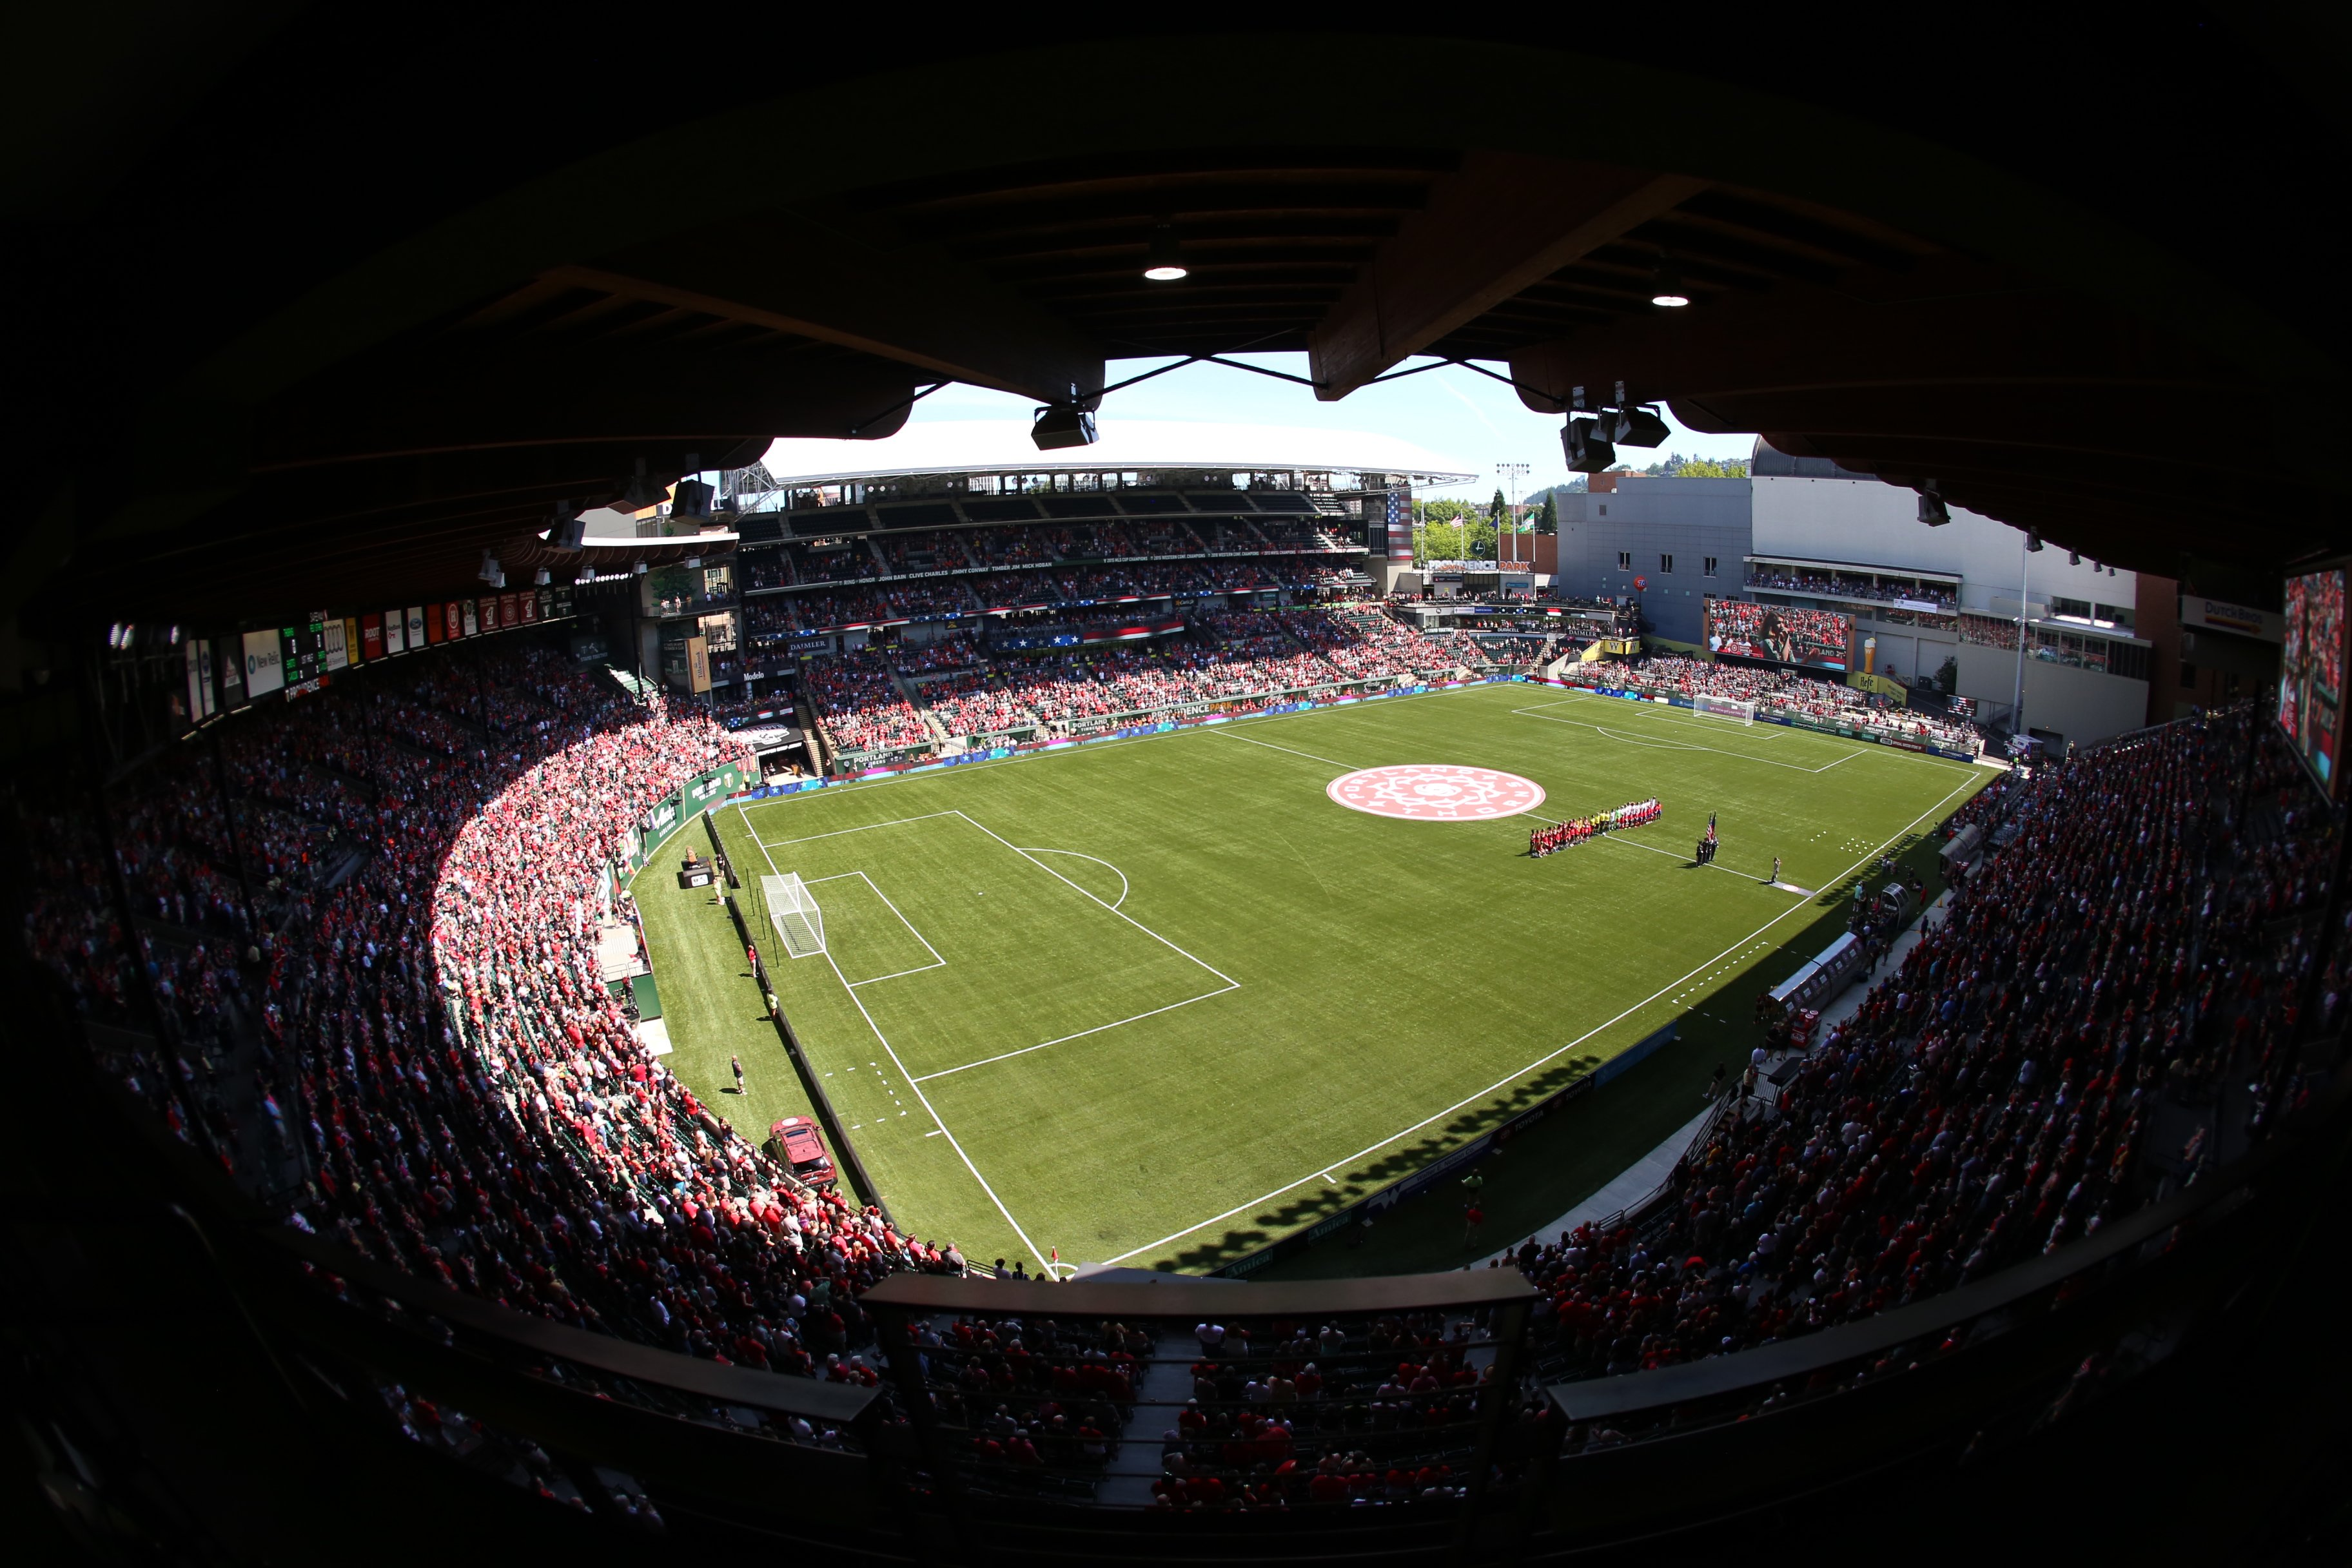 image of the Portland Thorns 2019 home opener courtesy of the Portland Thorns